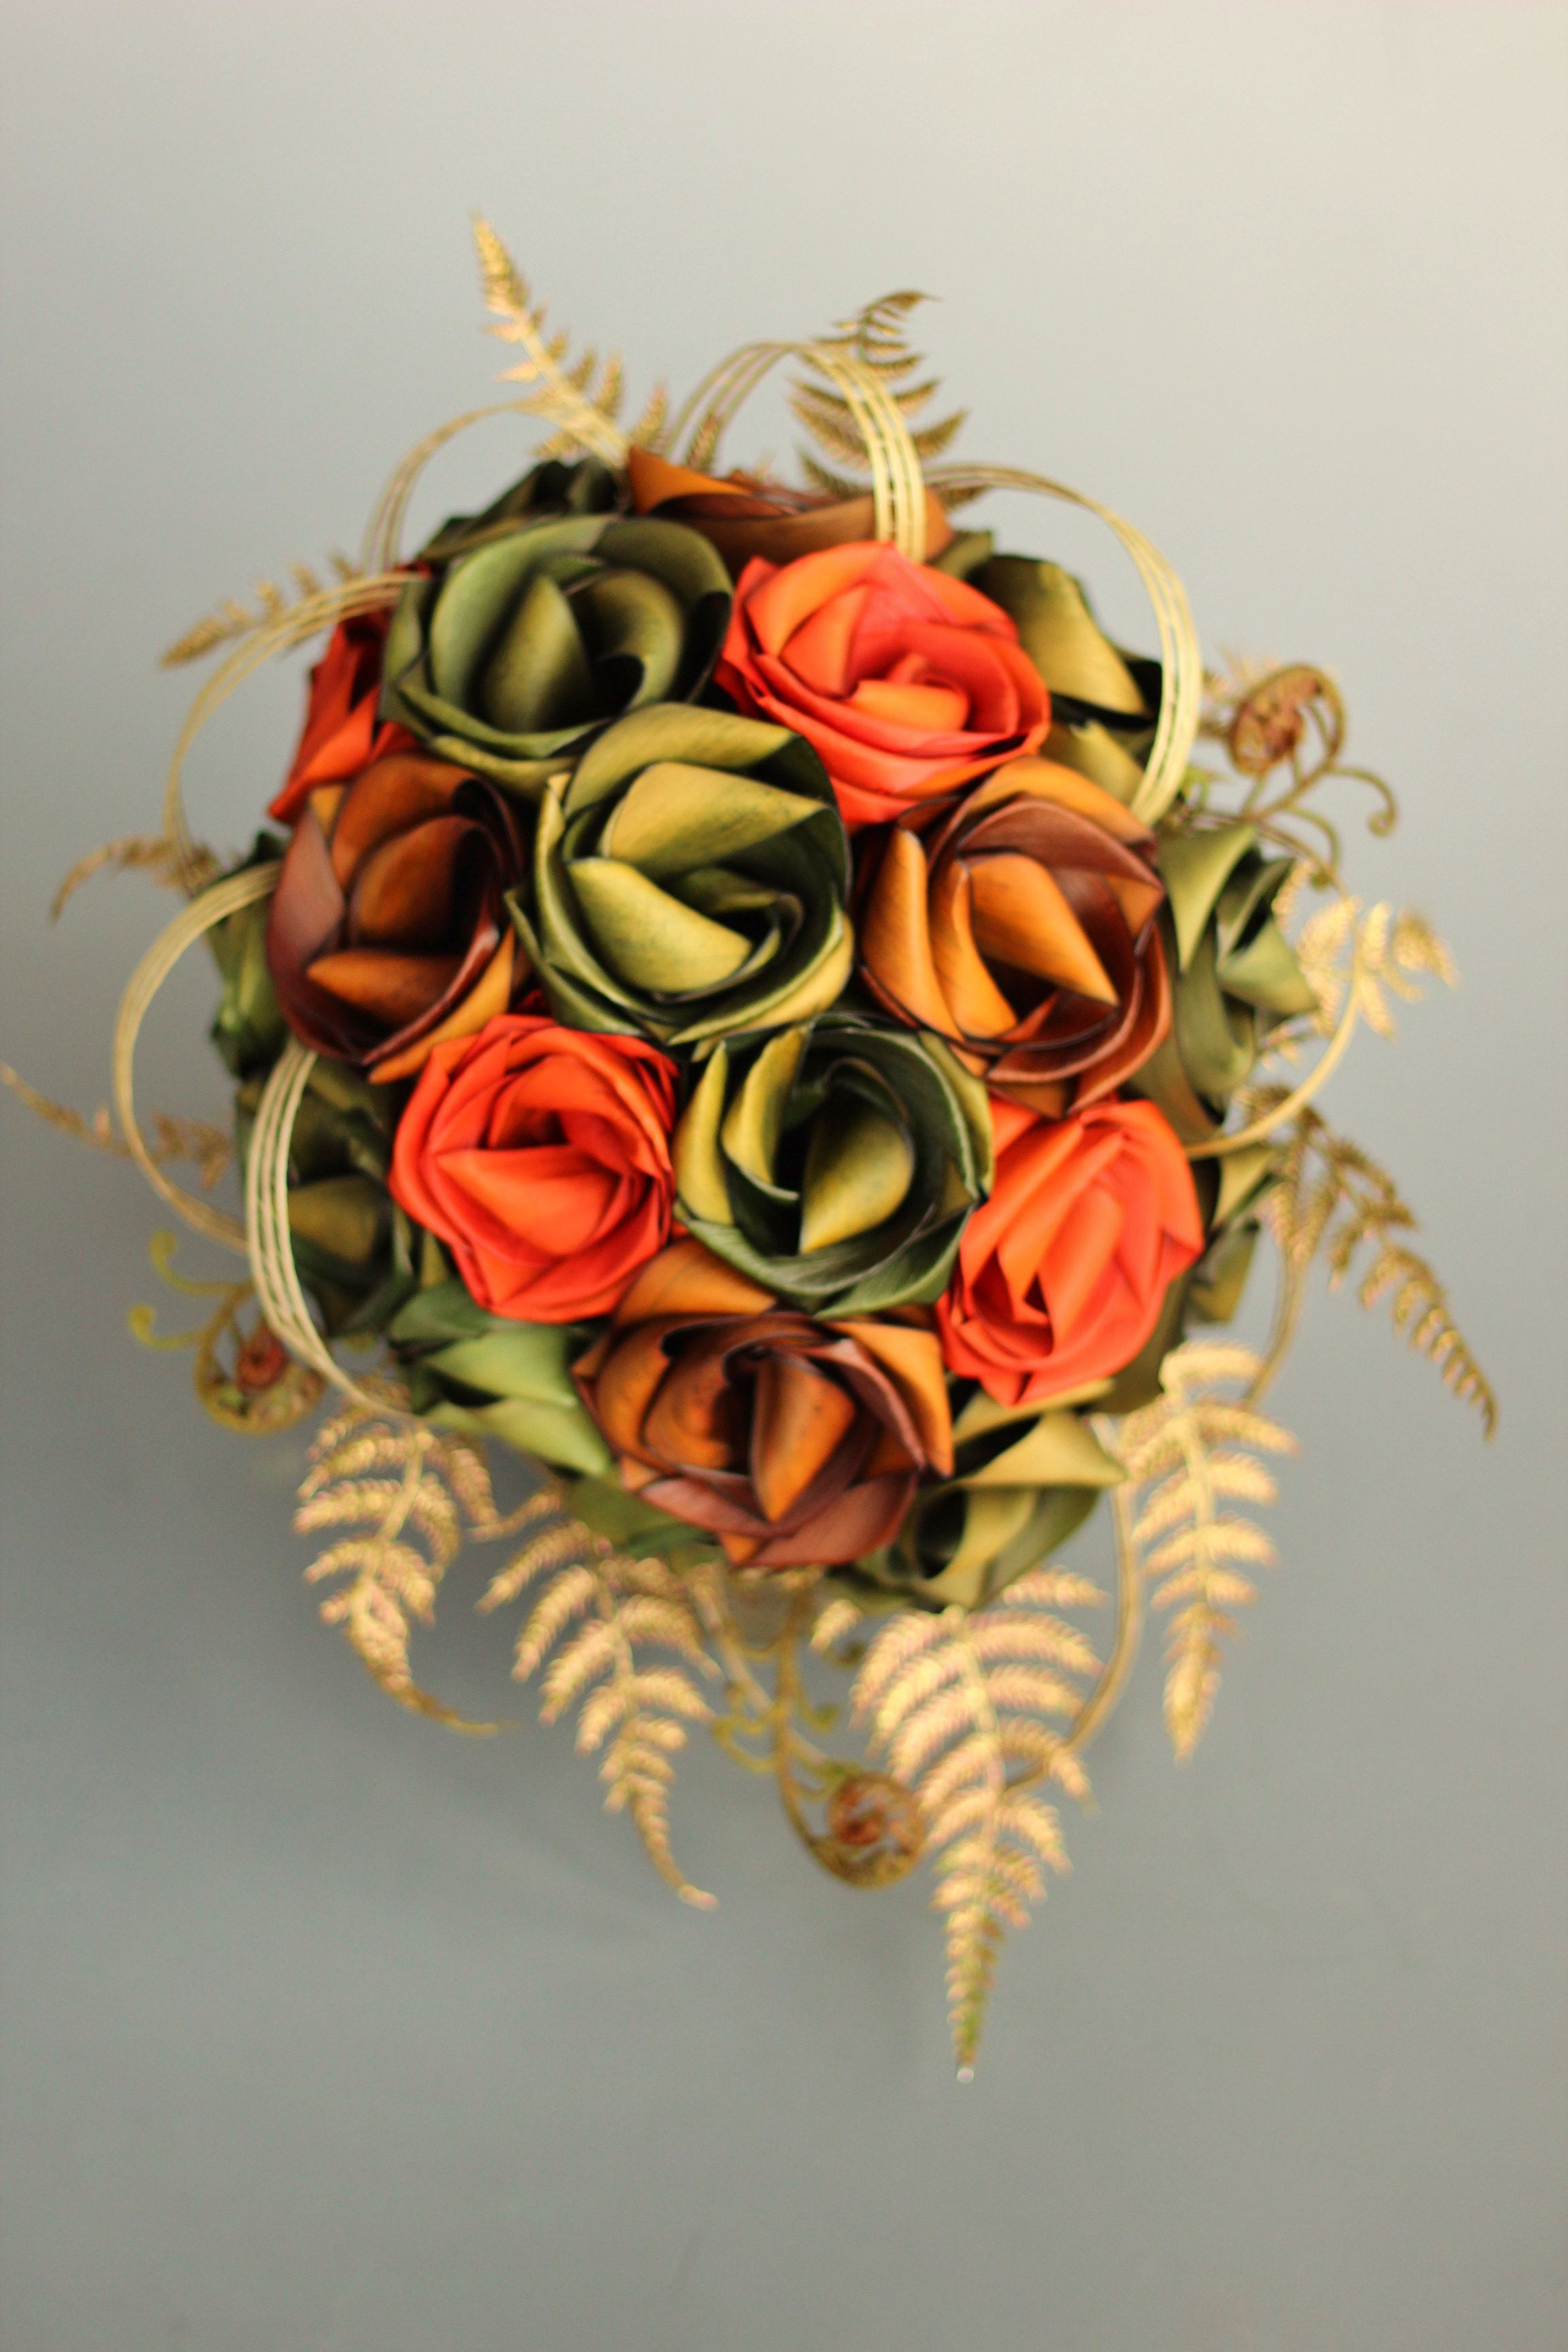 Teardrop flax flower wedding bouquet by Flaxation Orange sage and mid brown flax flowers